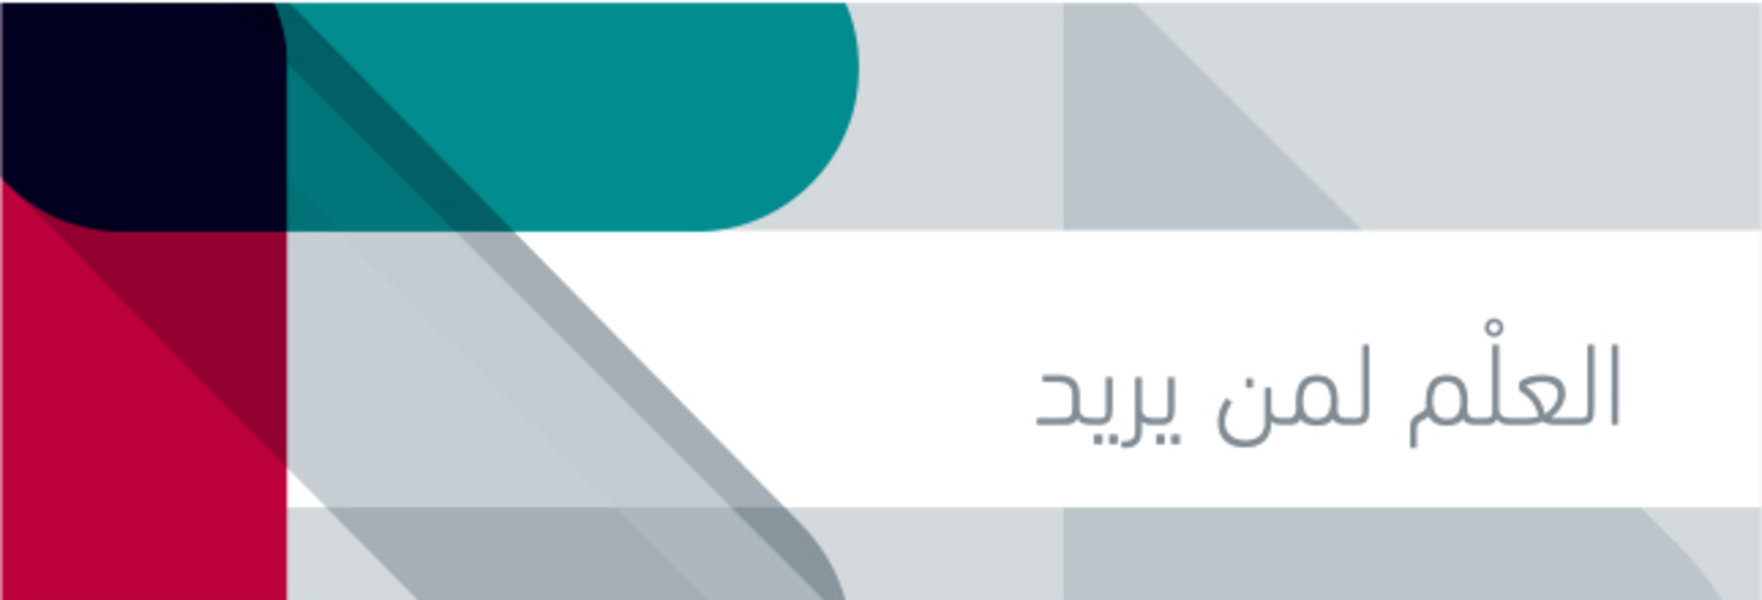 Online English Course by Jordan's Ministry of Education